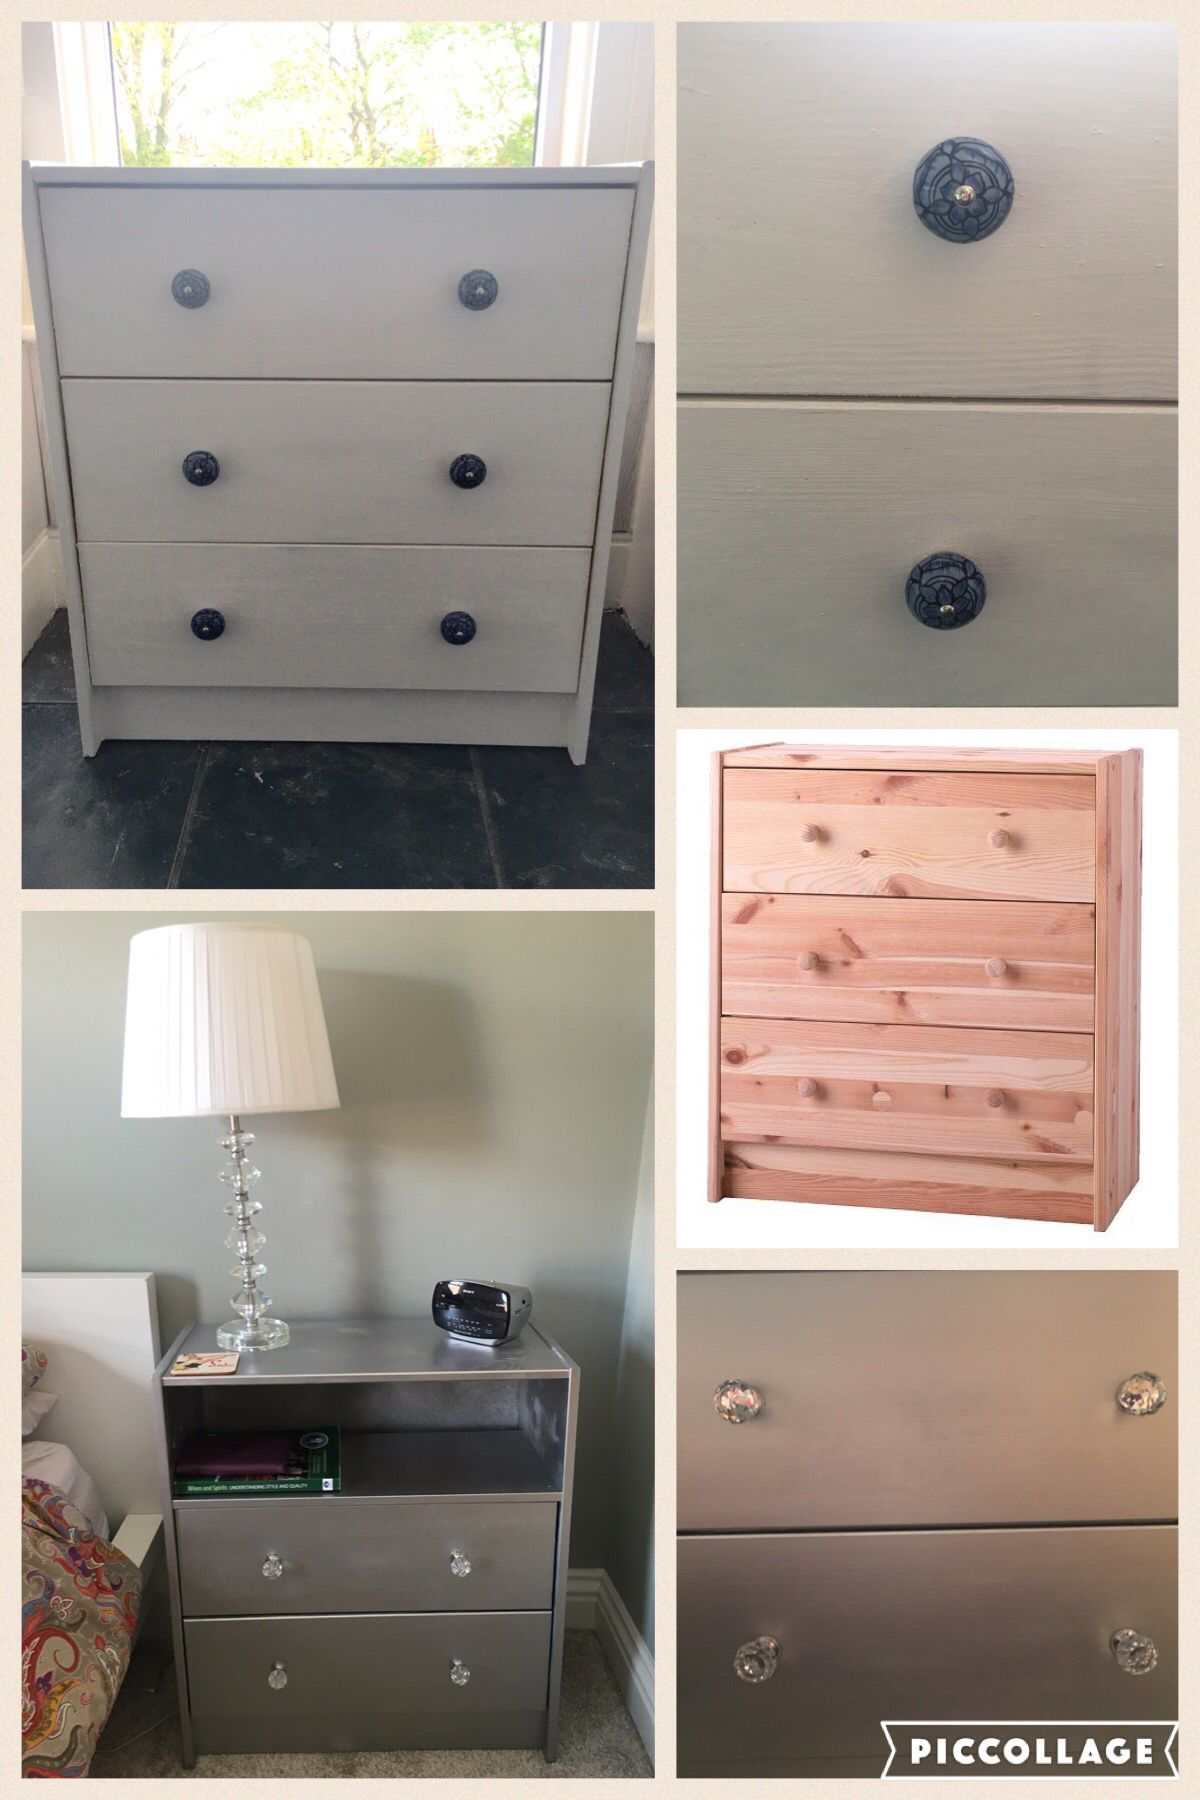 High Quality IKEA Rast Chest Of Drawers Hack 2 Ways! Upcycled Using White Annie Sloan  Paint With